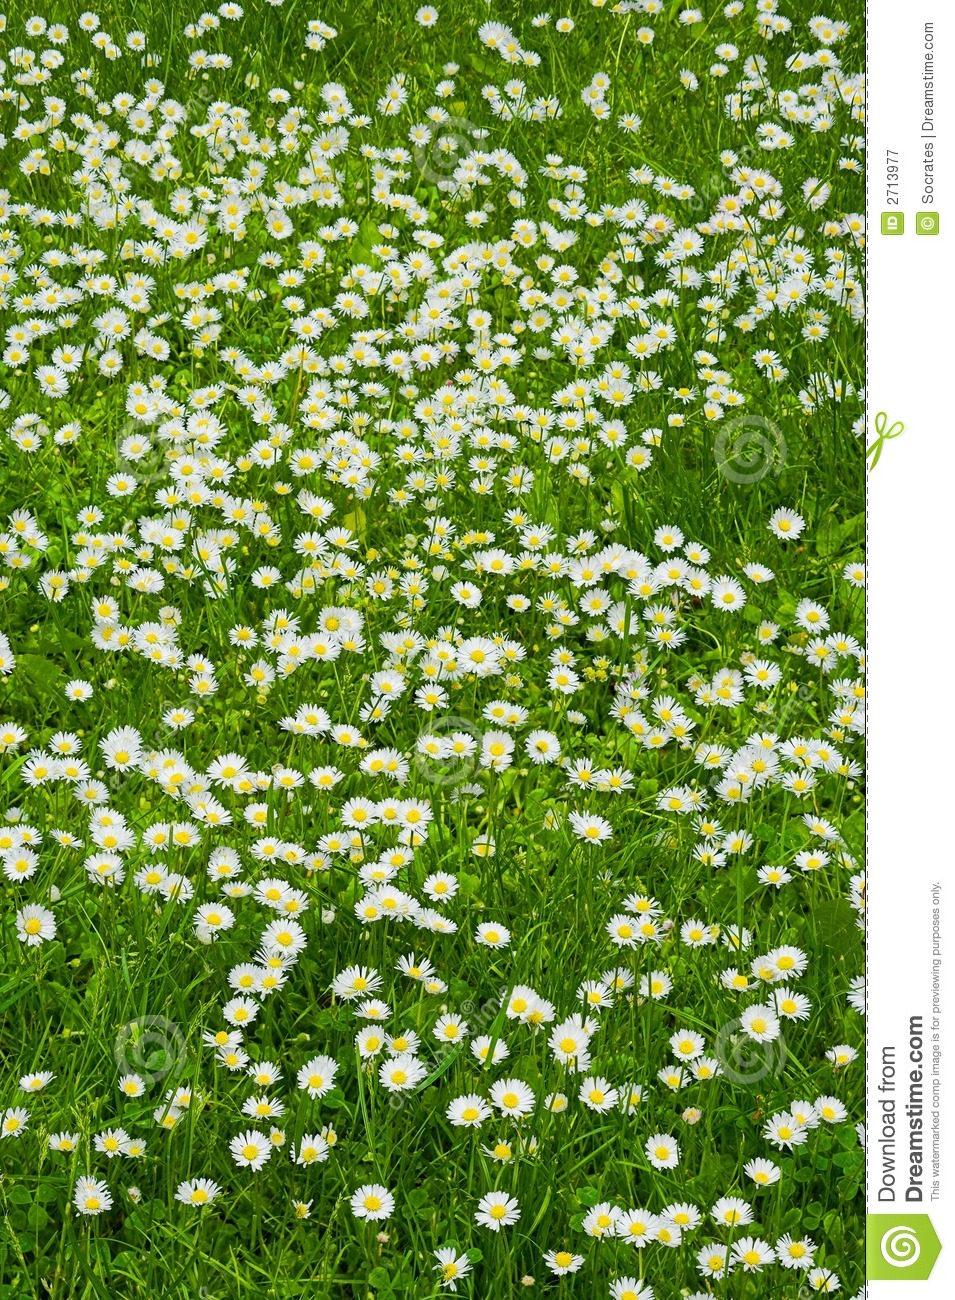 A lawn of white flowers stock image image of gardening 2713977 download a lawn of white flowers stock image image of gardening 2713977 mightylinksfo